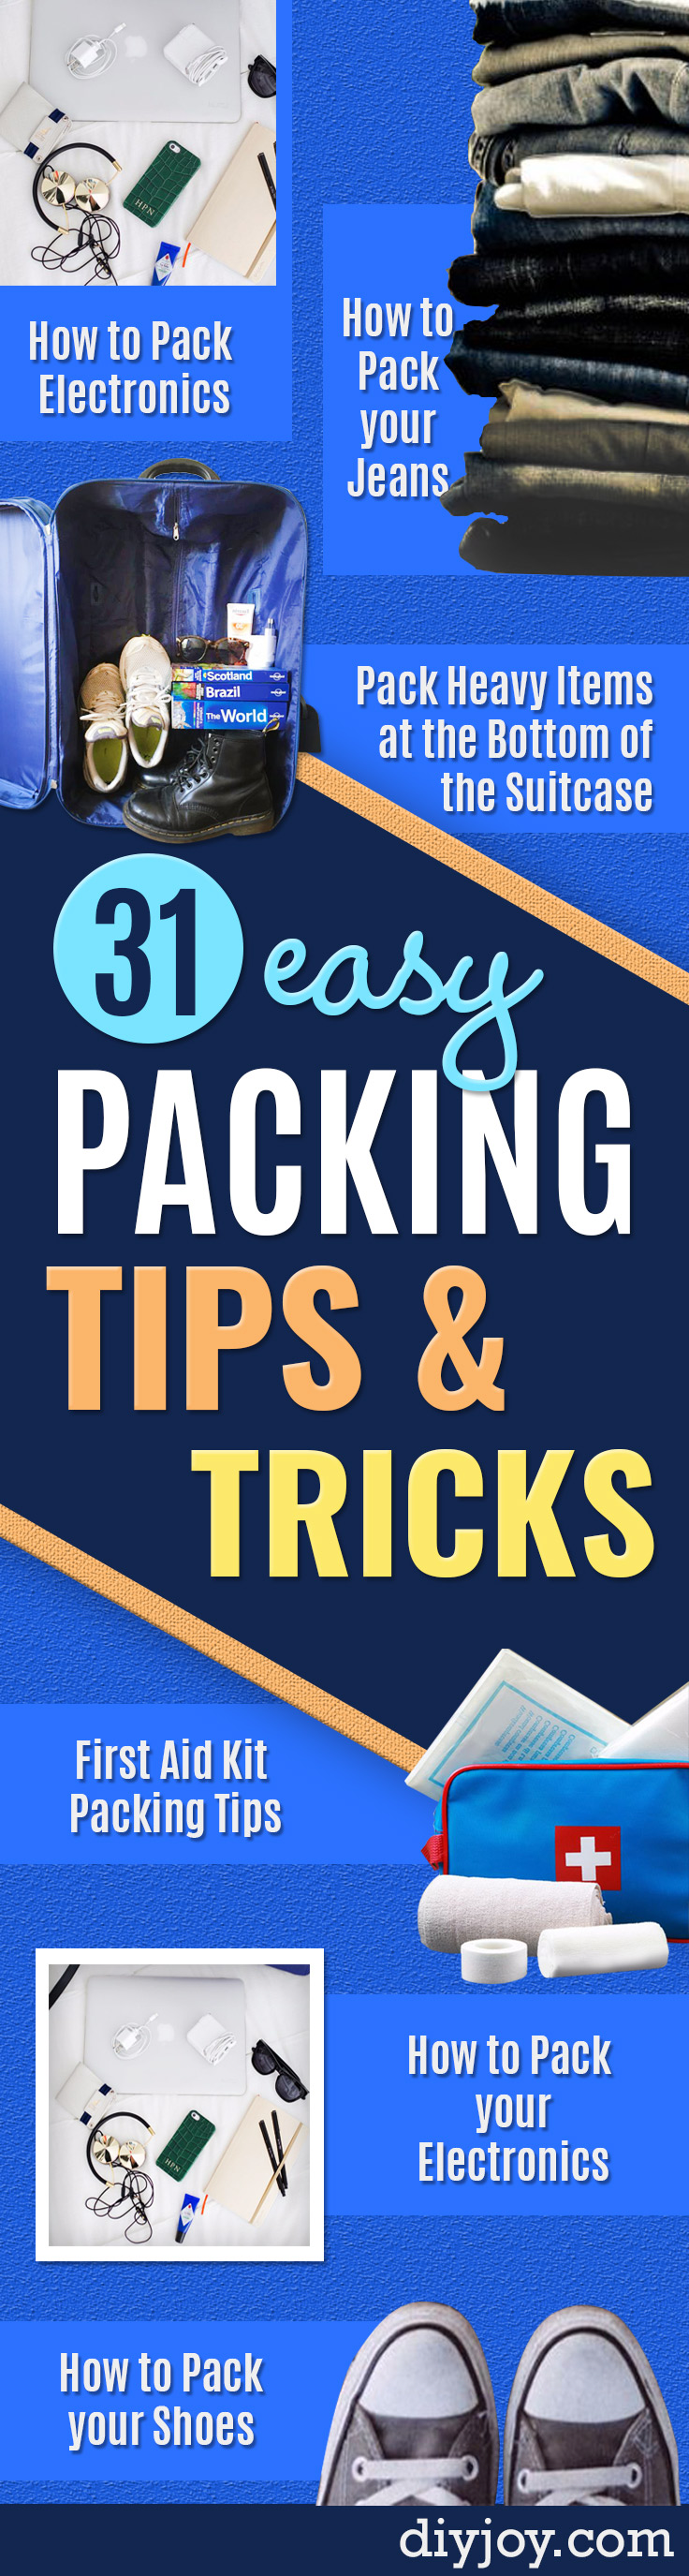 Packing Tips and Tricks Packing Tips and Tricks new picture